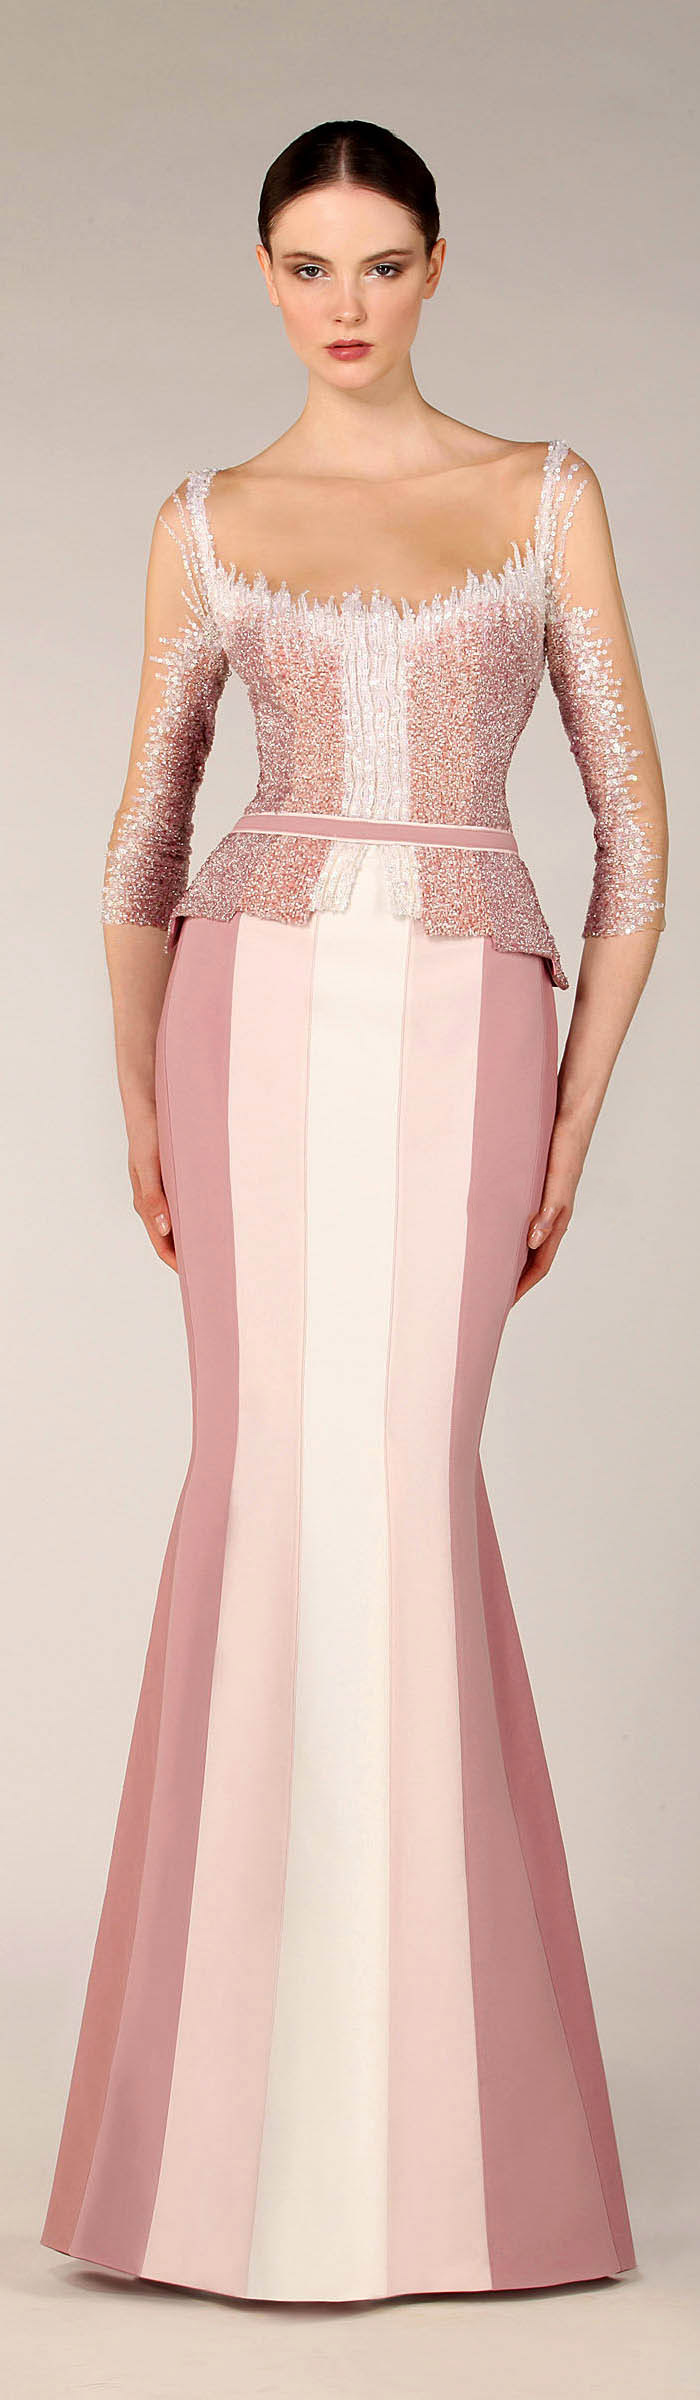 Tony Ward Fall Winter 2013-14 (26)